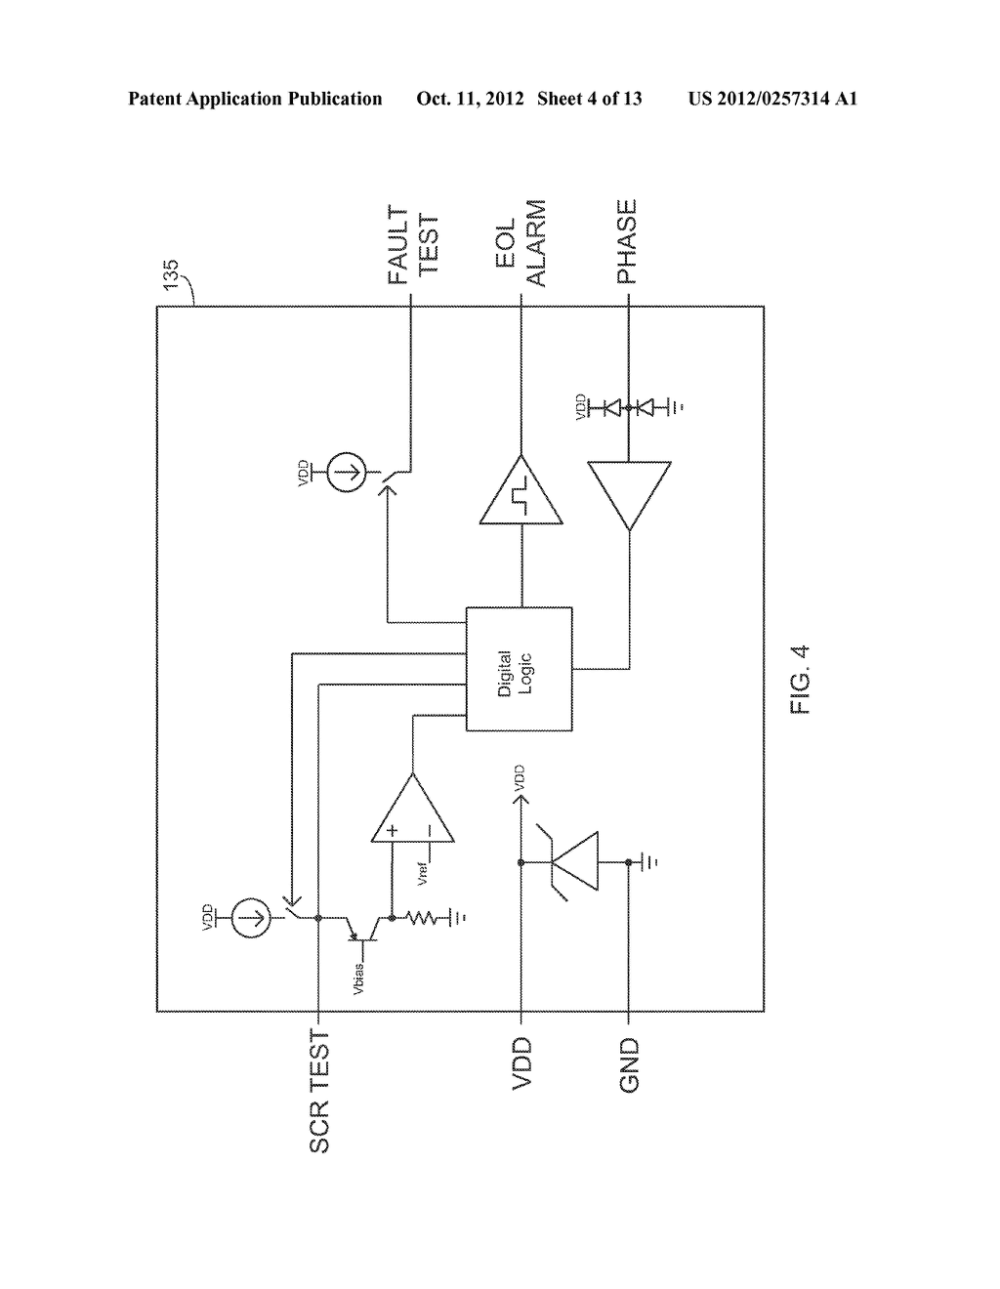 medium resolution of ground fault circuit interrupter gfci monitor diagram schematic and image 05